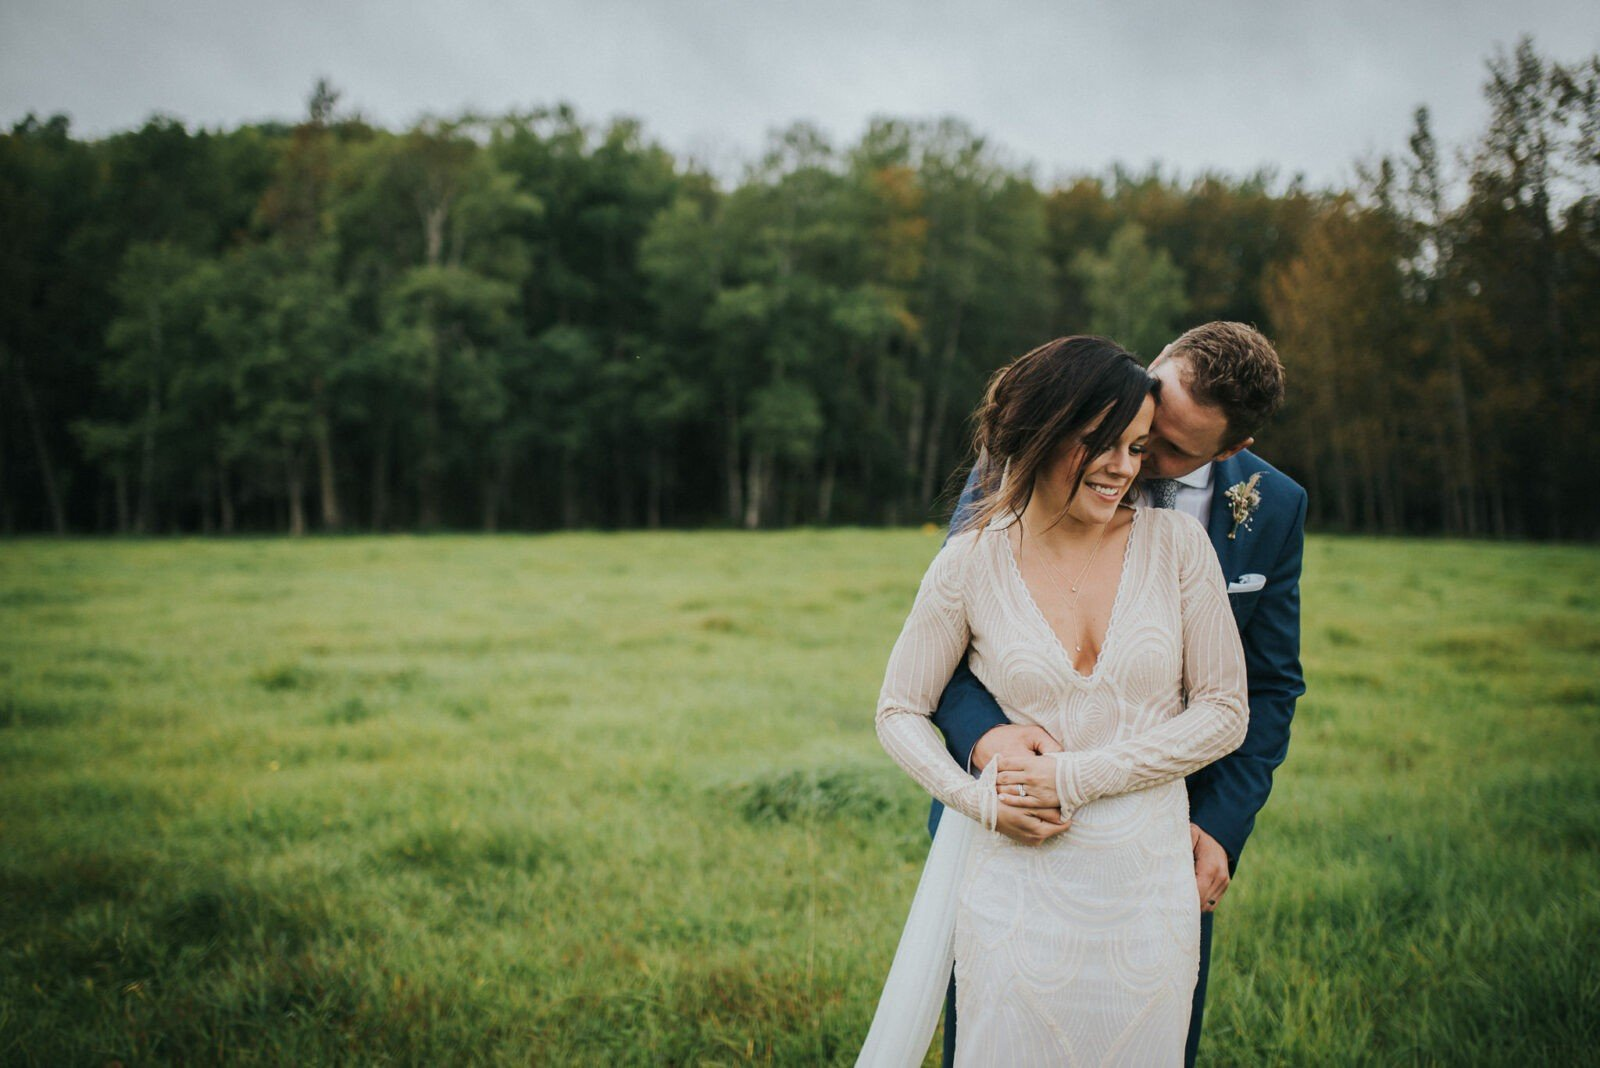 Newlyweds celebrate in the forest.